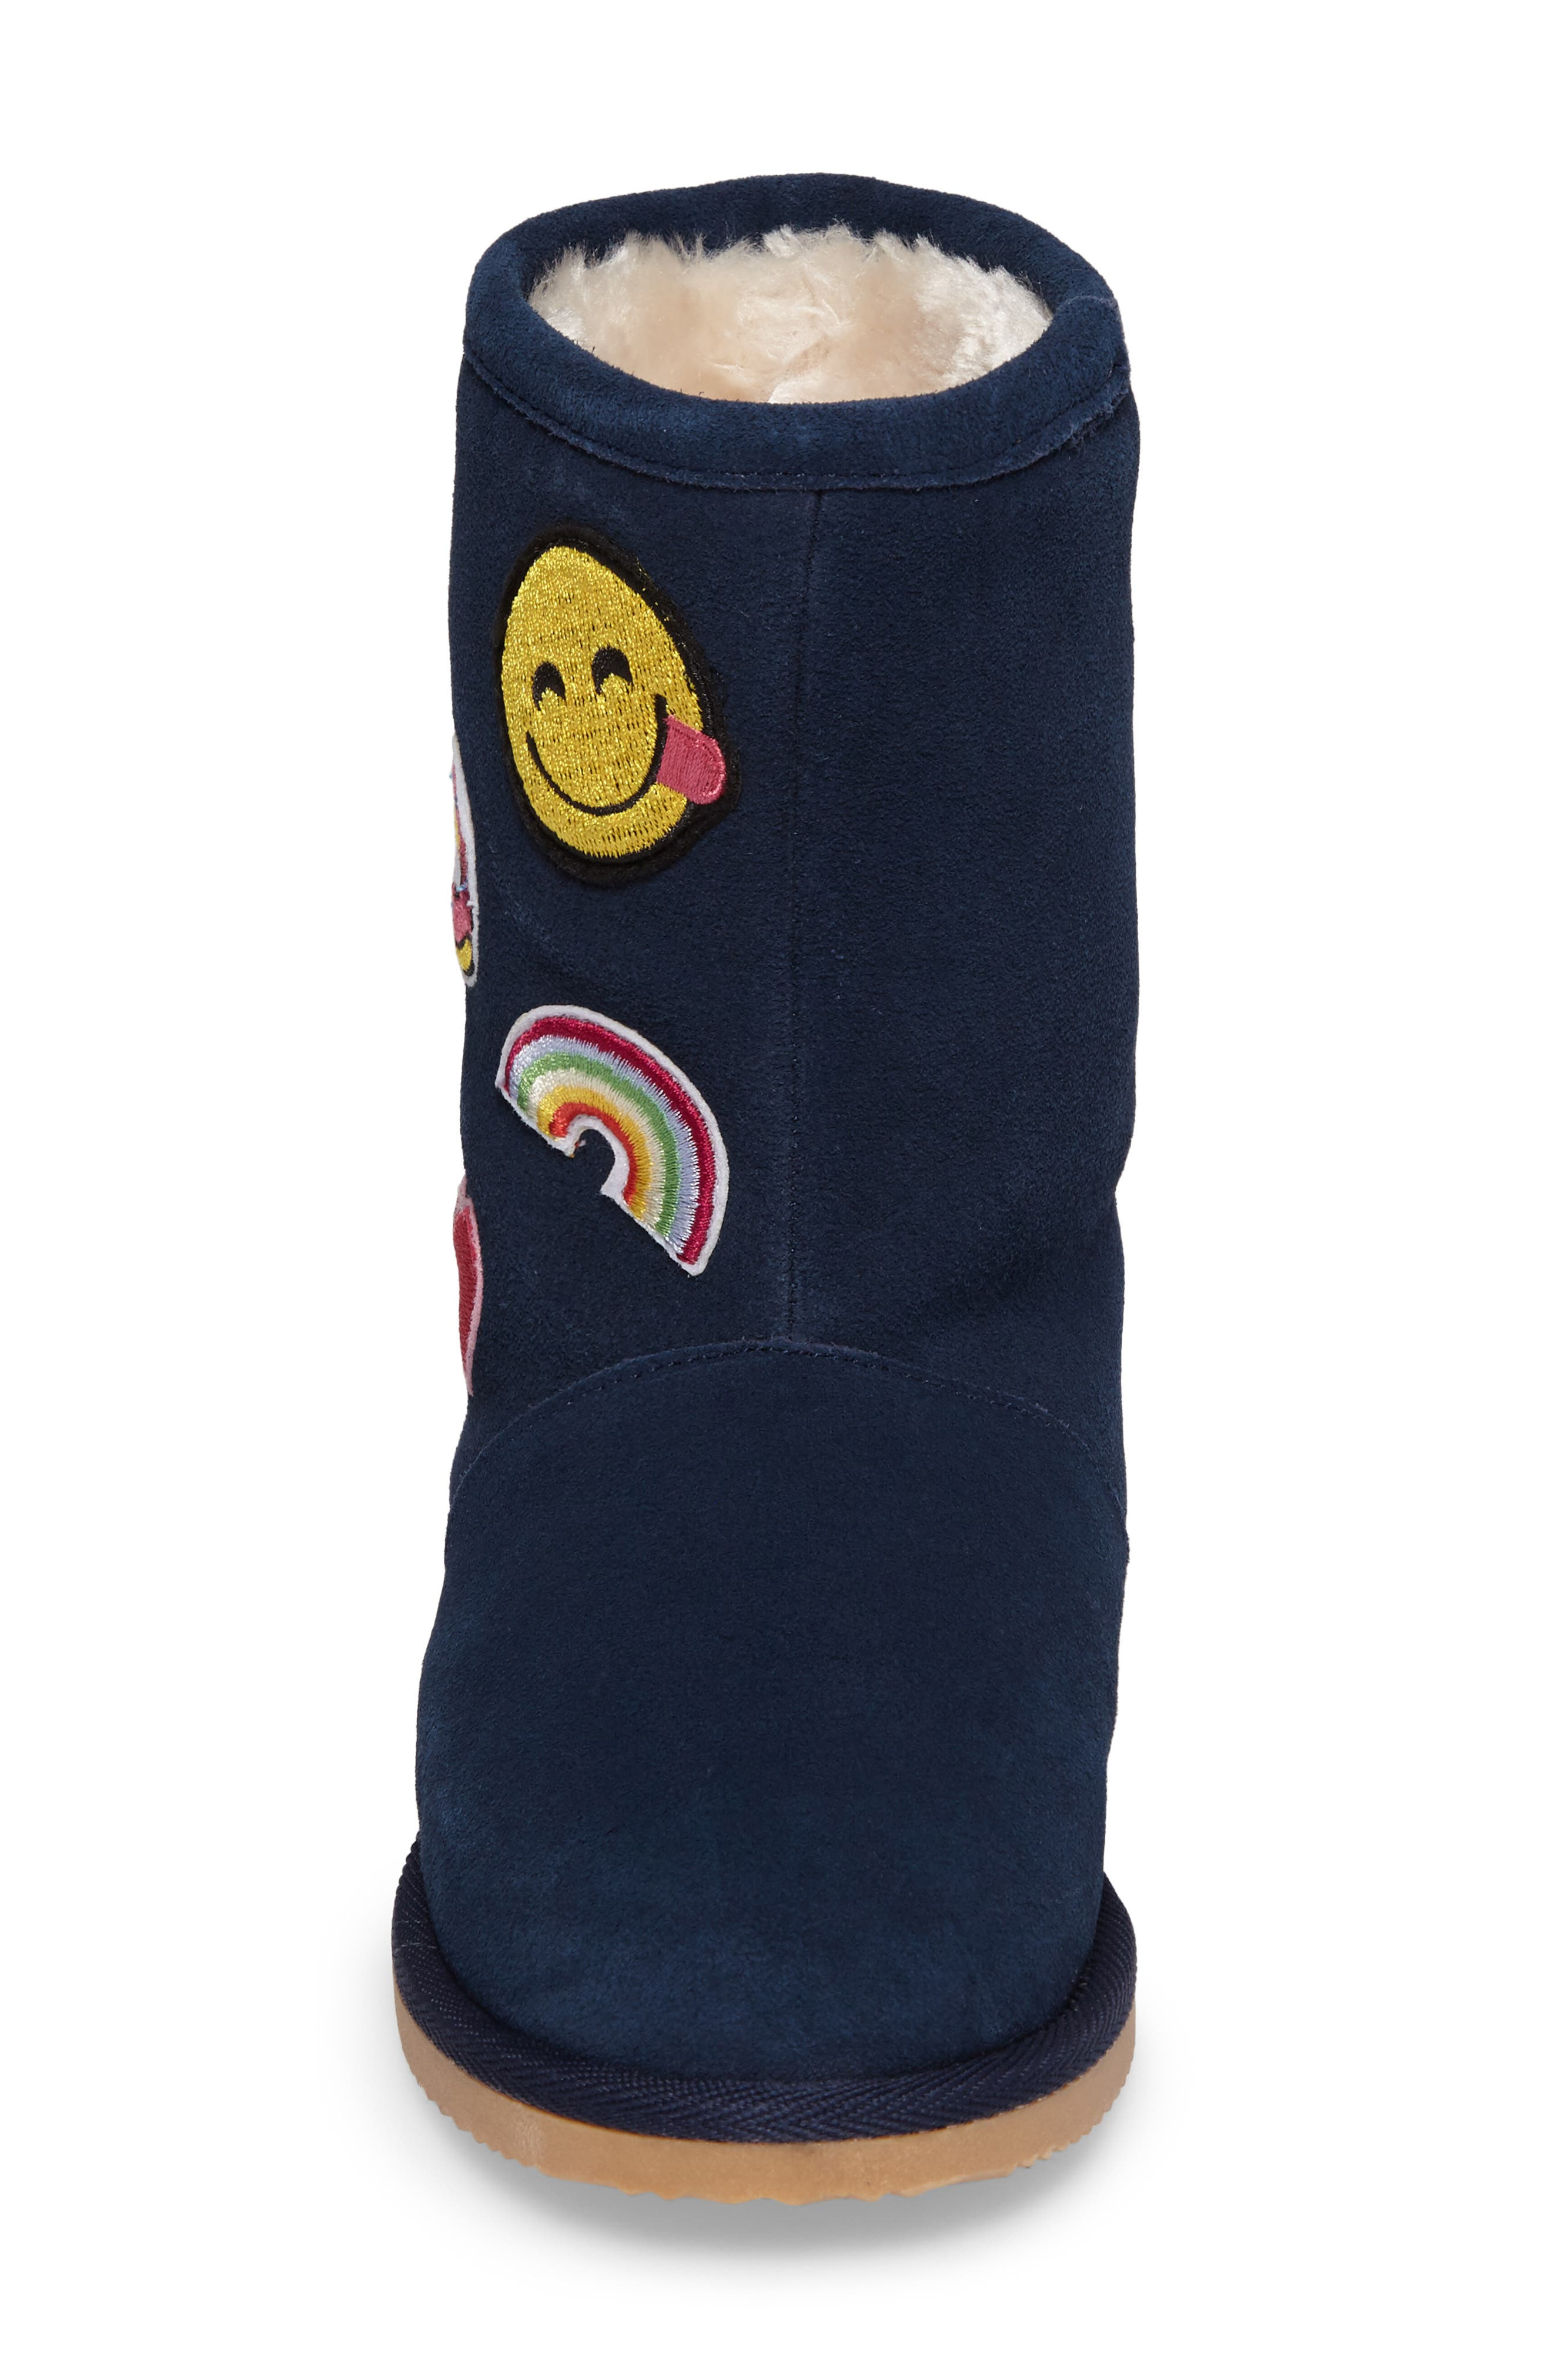 Alternate Image 4  - Tucker + Tate Connie Appliqué Faux Fur Boot (Walker, Toddler, Little Kid & Big Kid)